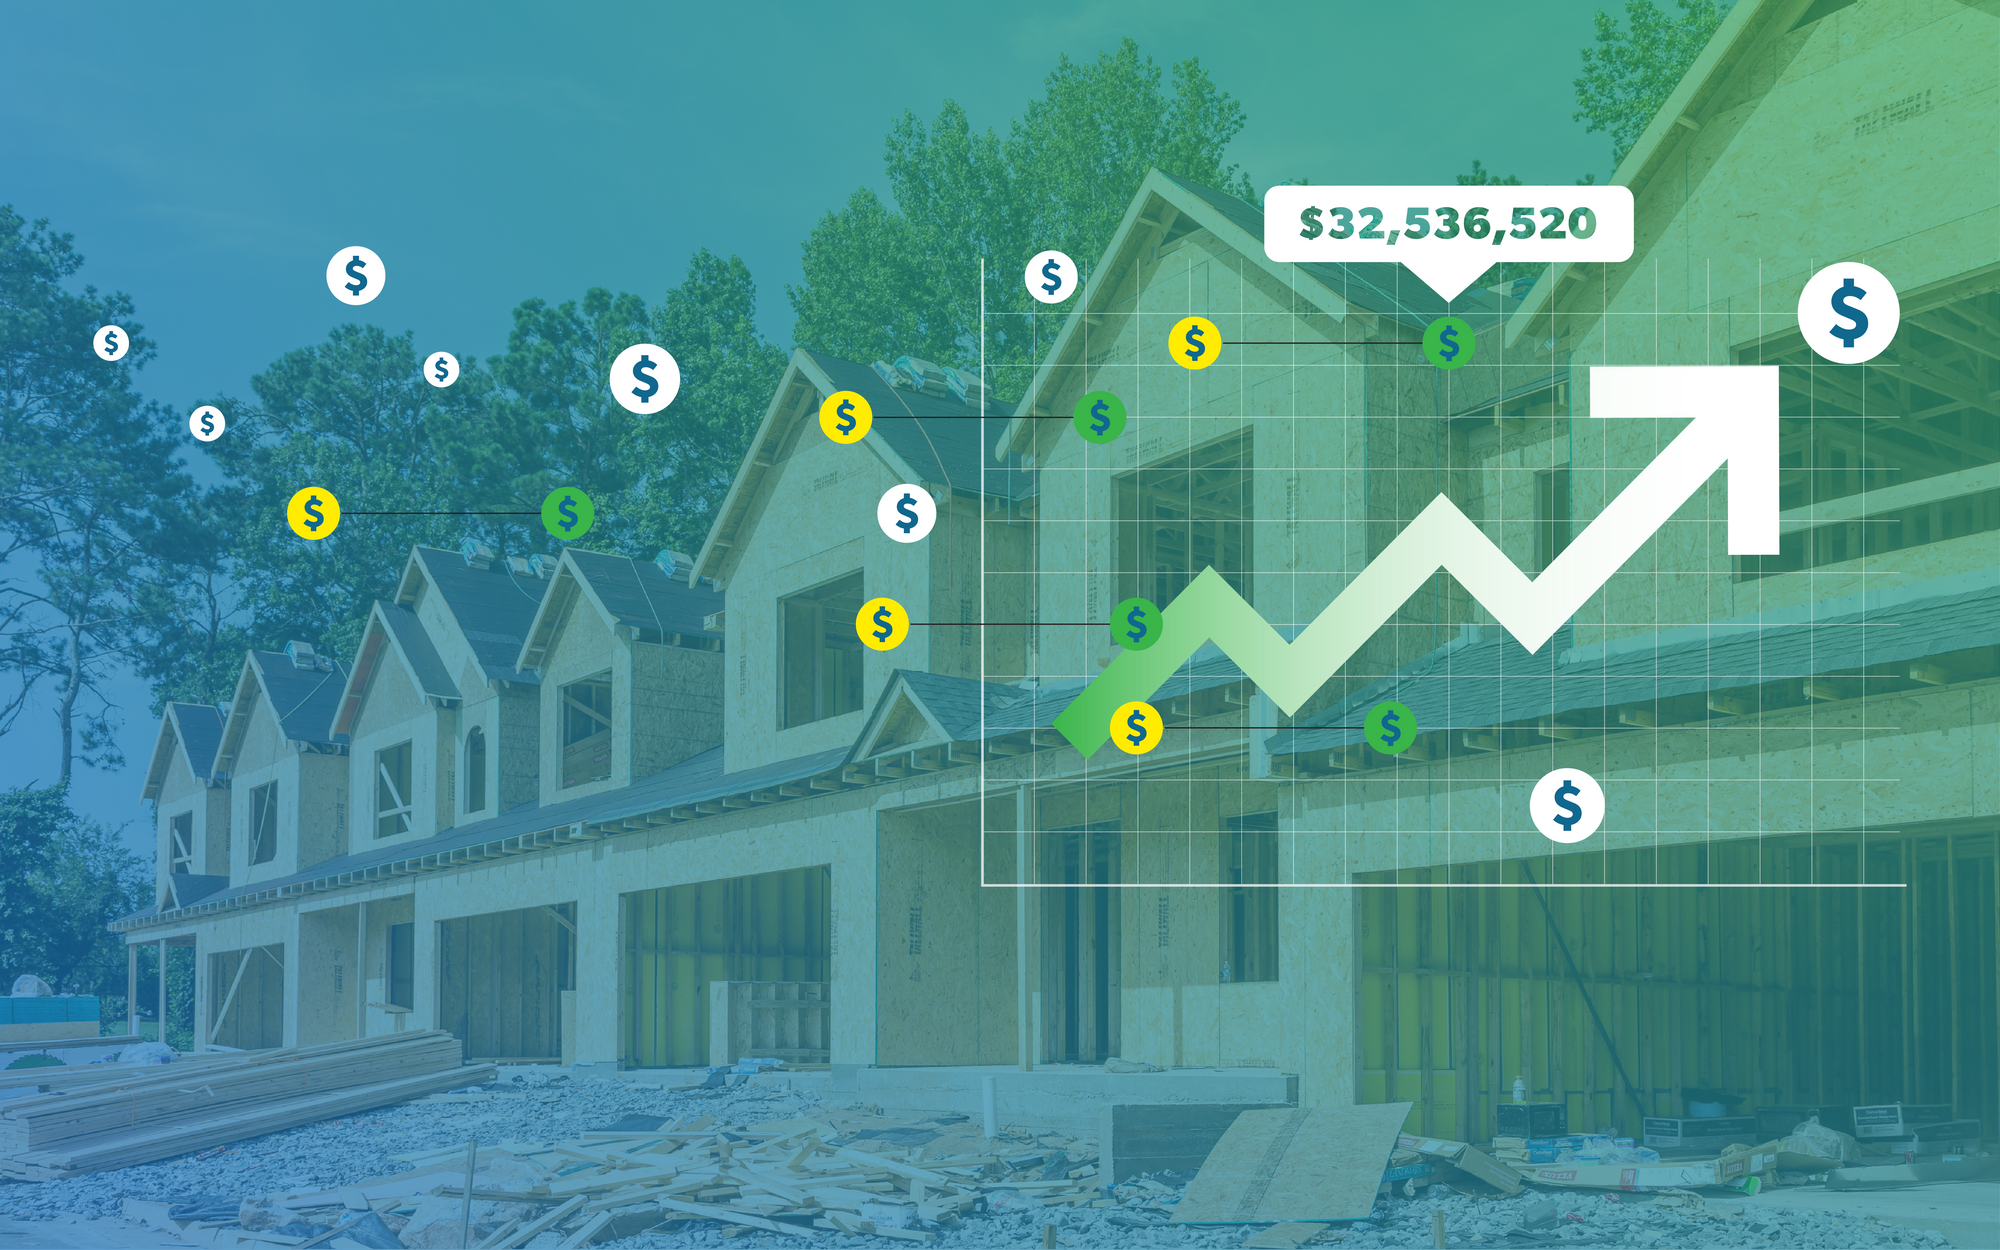 C Sweetened: Here's What Public Homebuilding Chiefs Got Paid in 2020 ... And Why